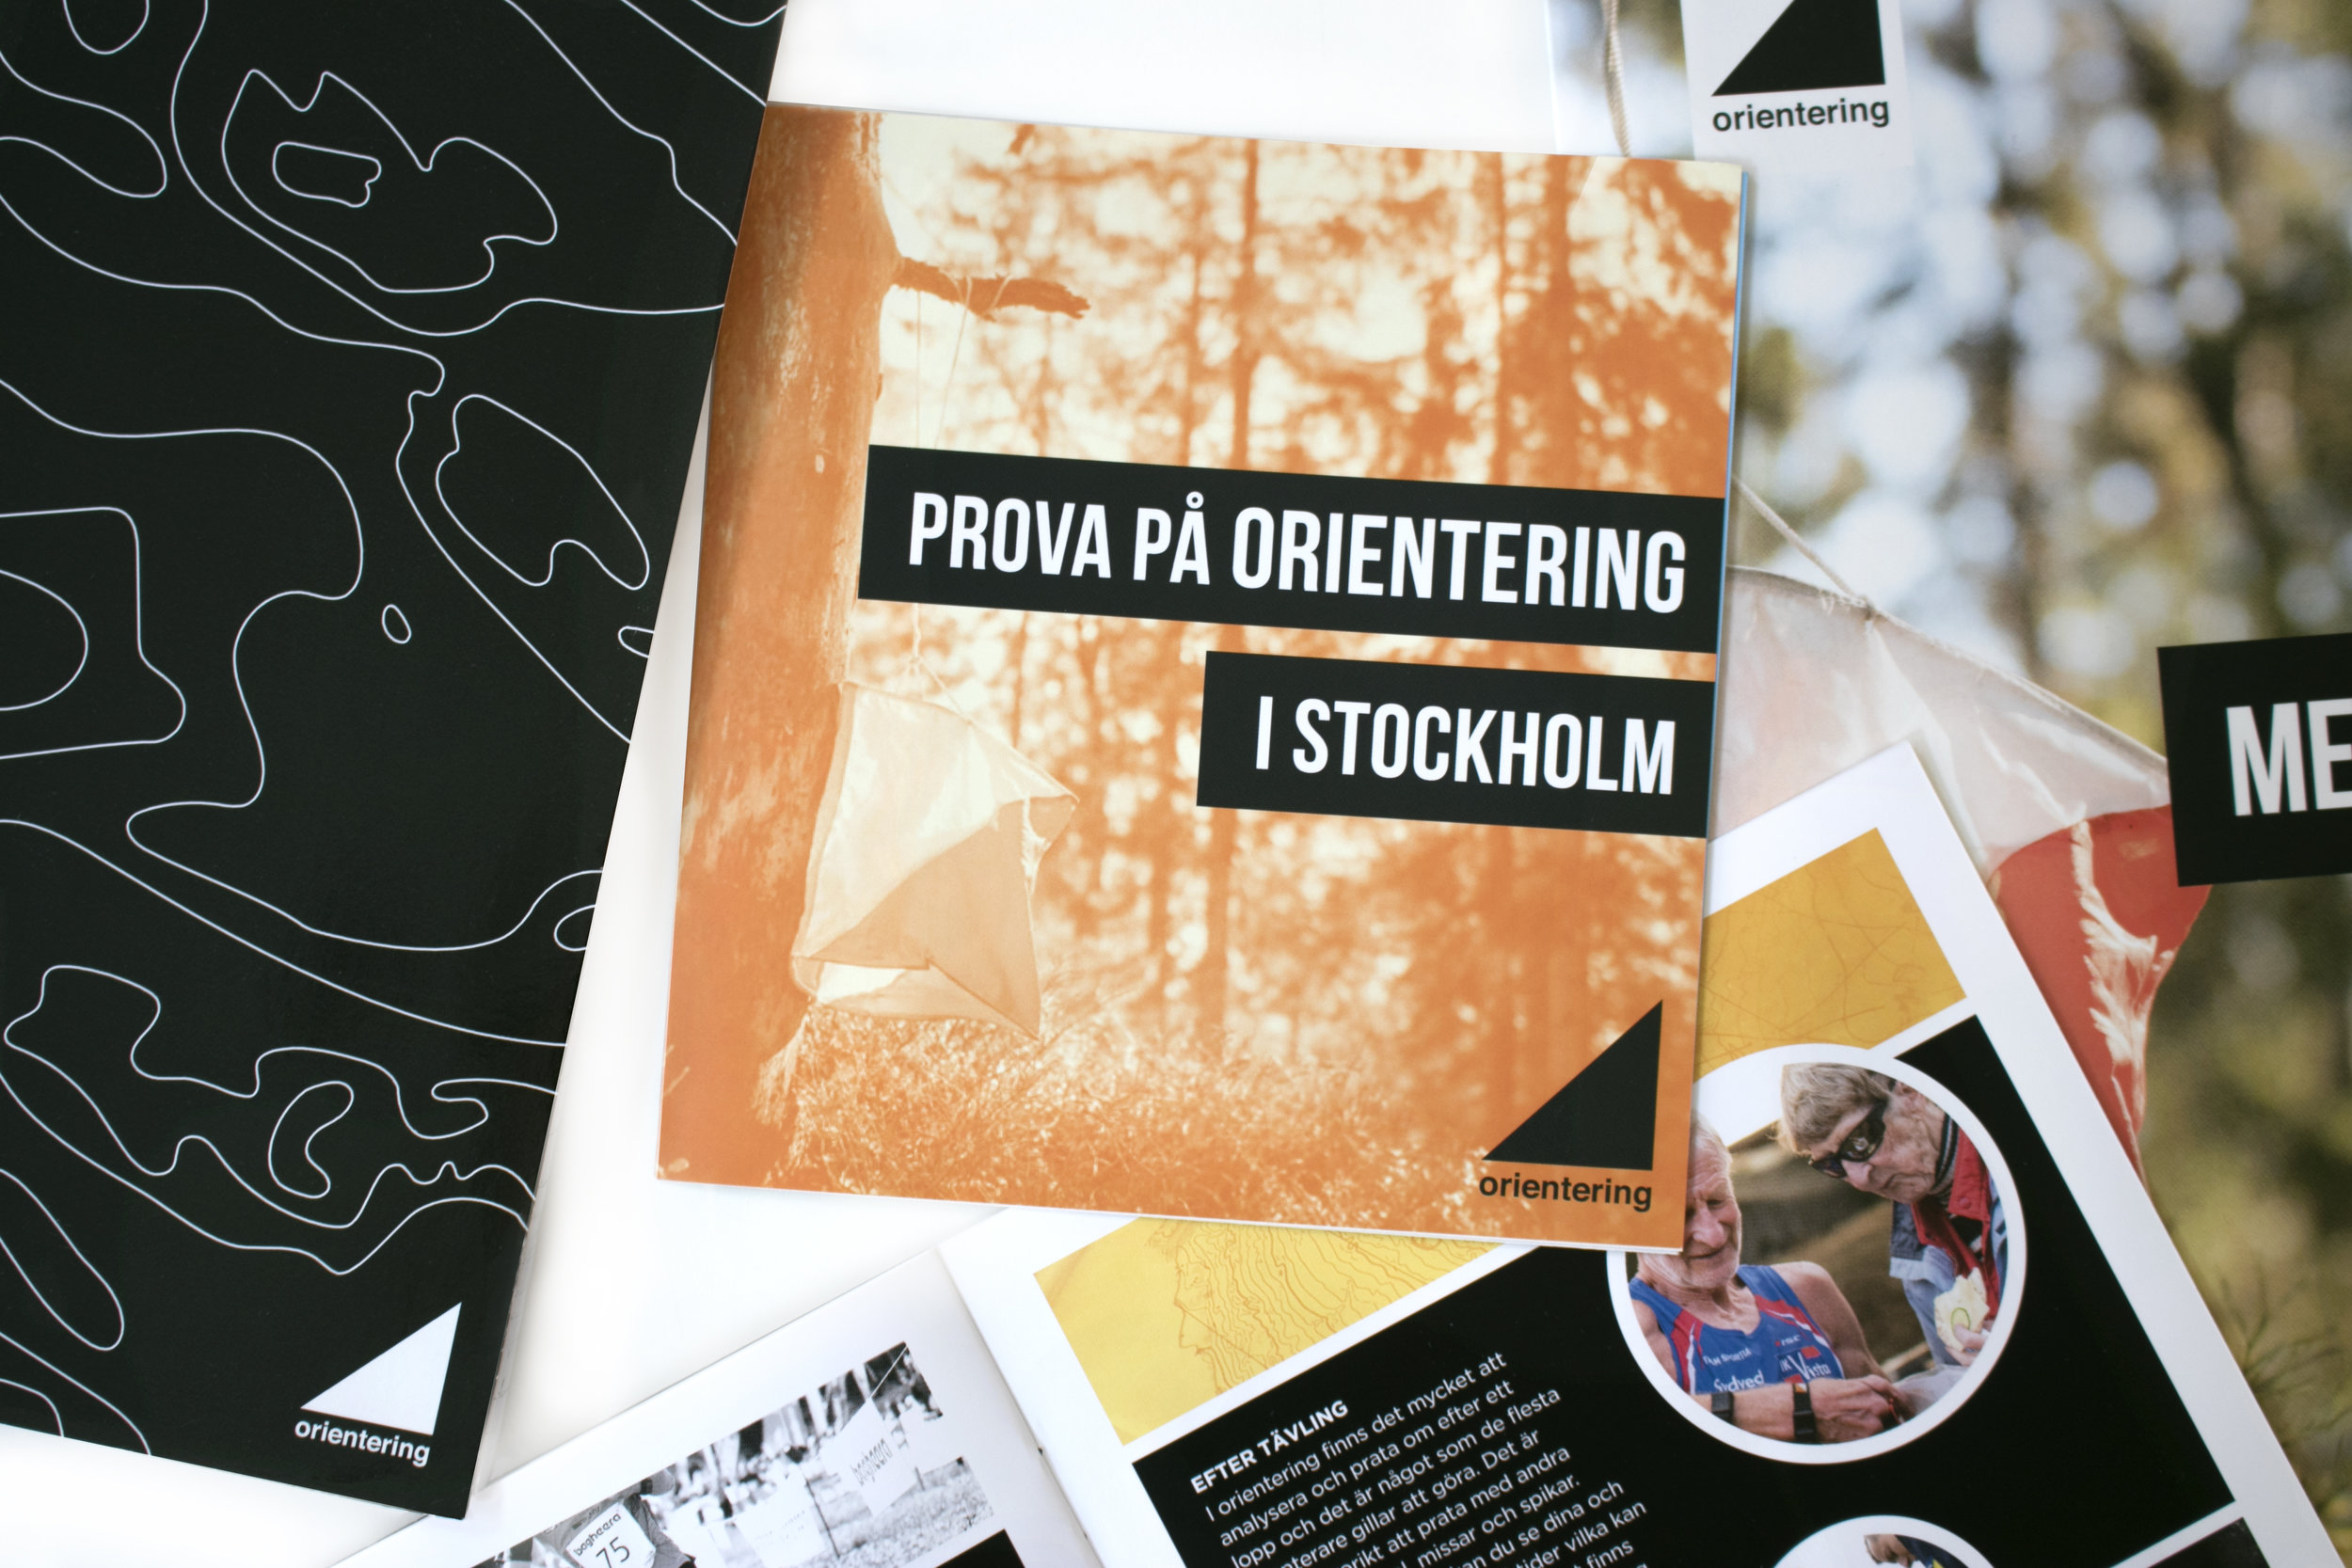 orientering.se  BRAND IDENTITY, WEBSITE & COMMUNICATION